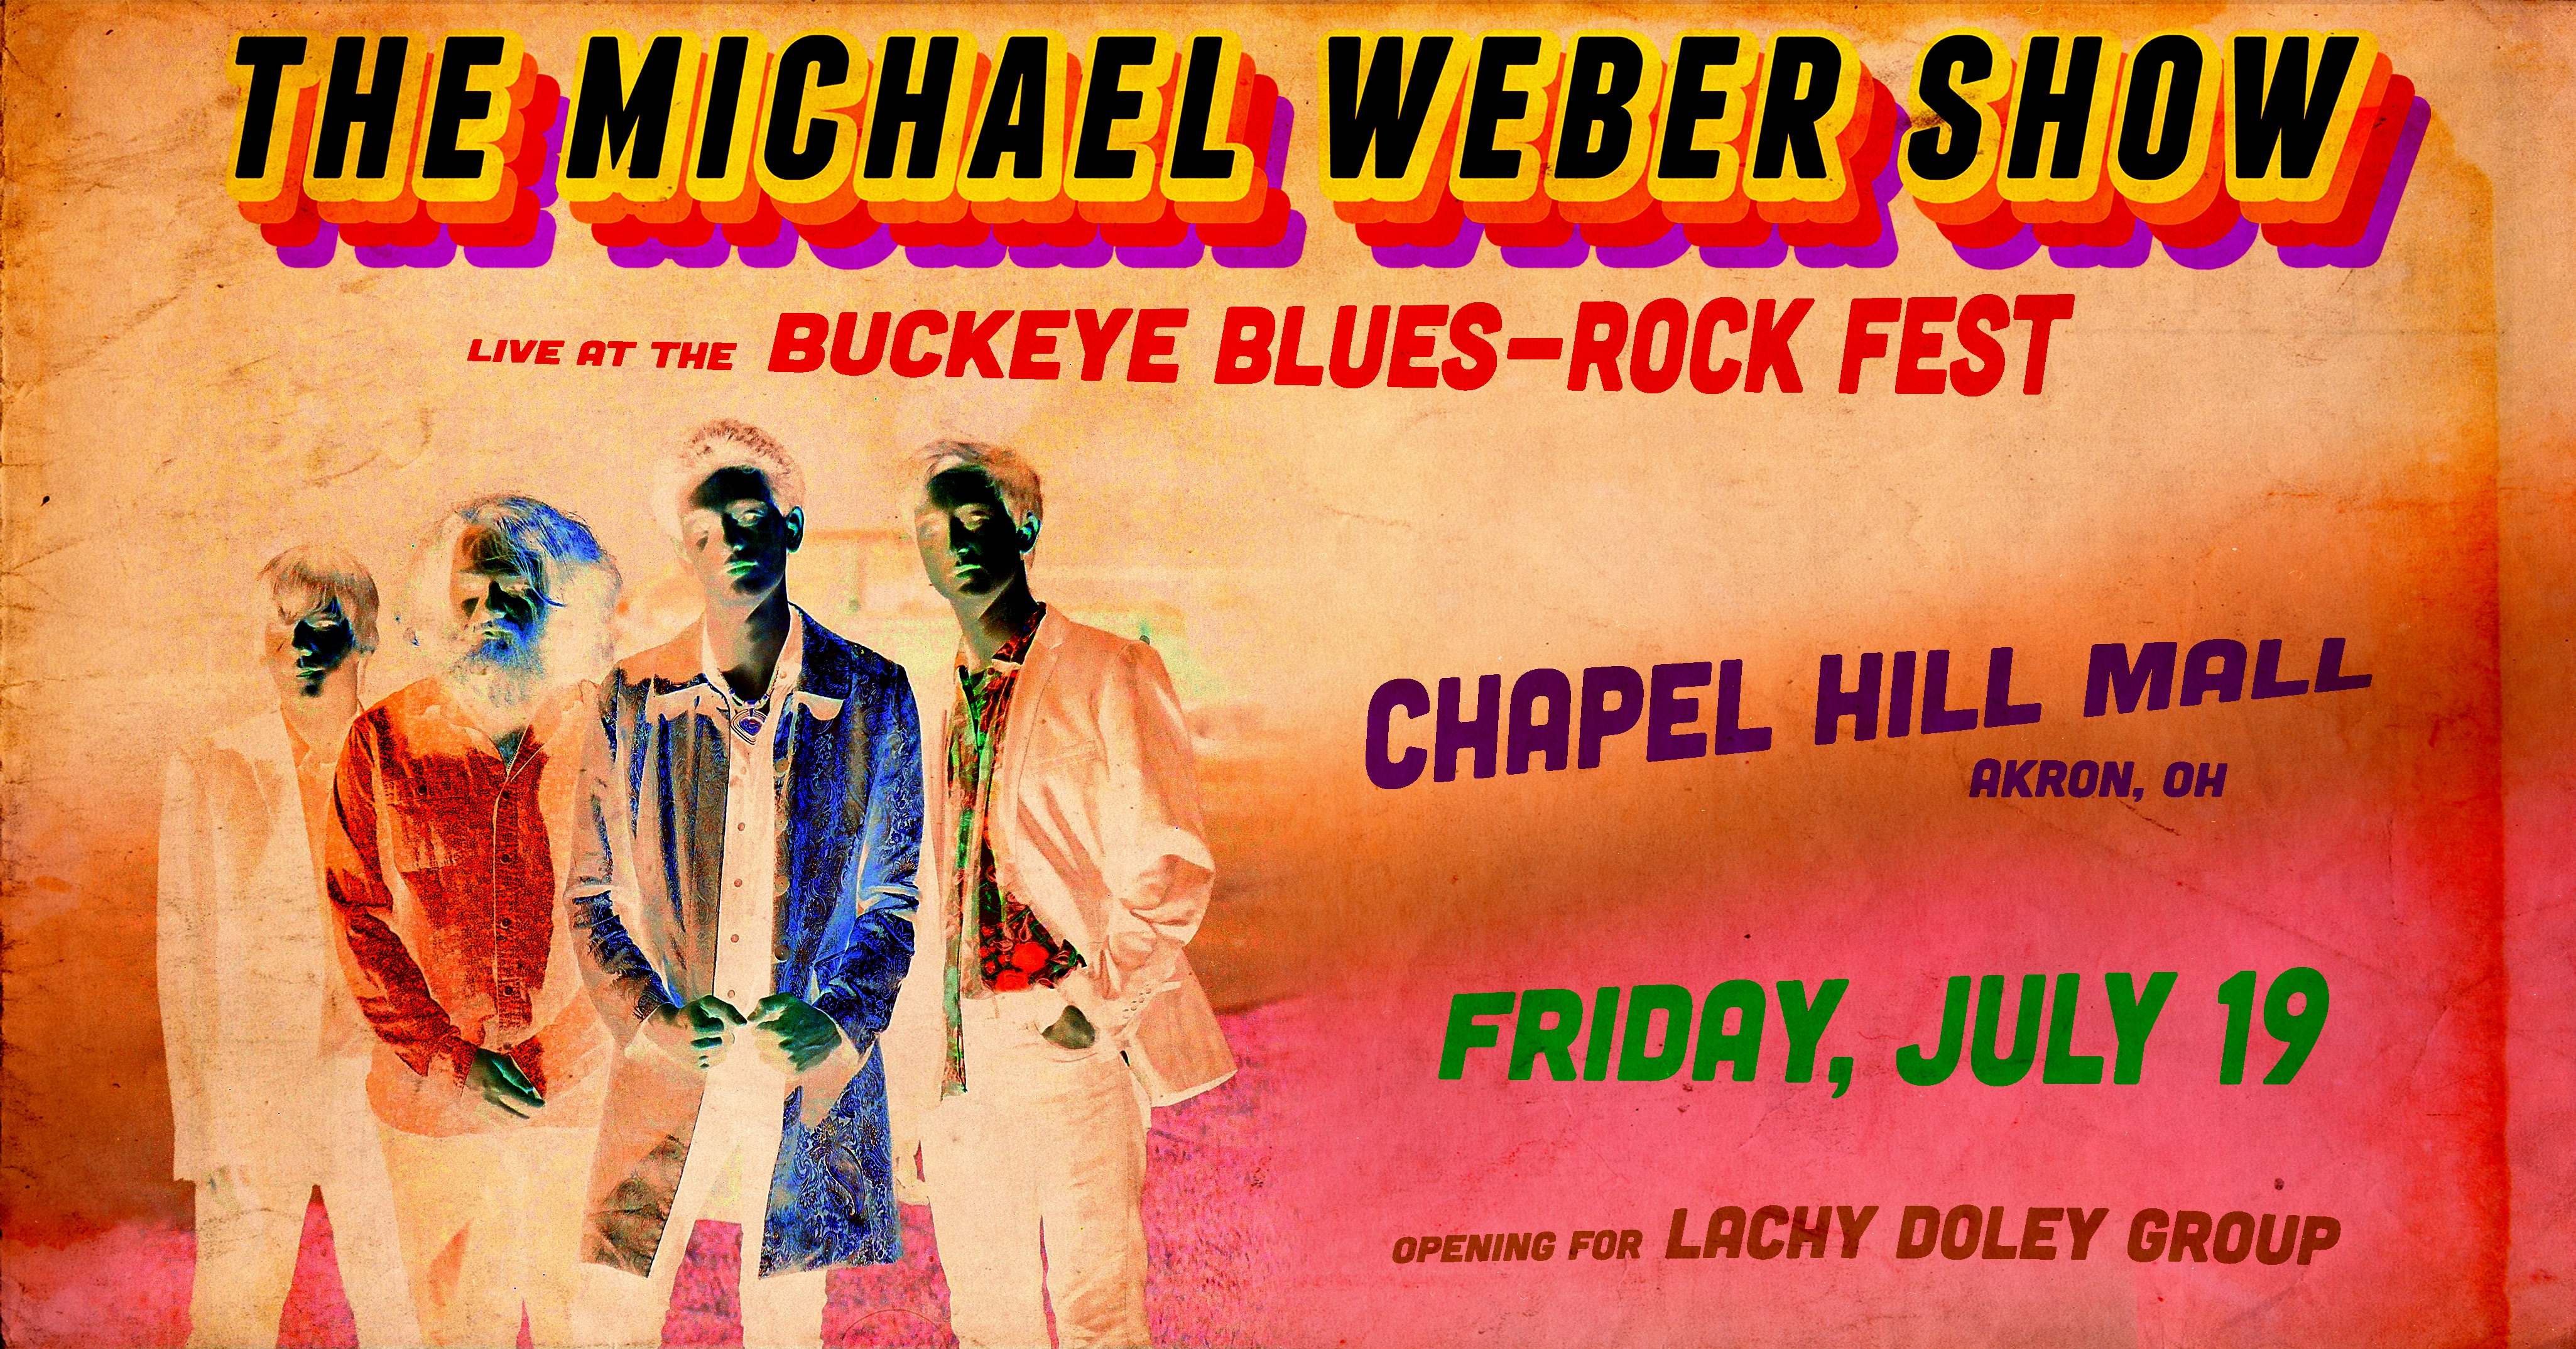 Buckeye Blues-Rock Fest